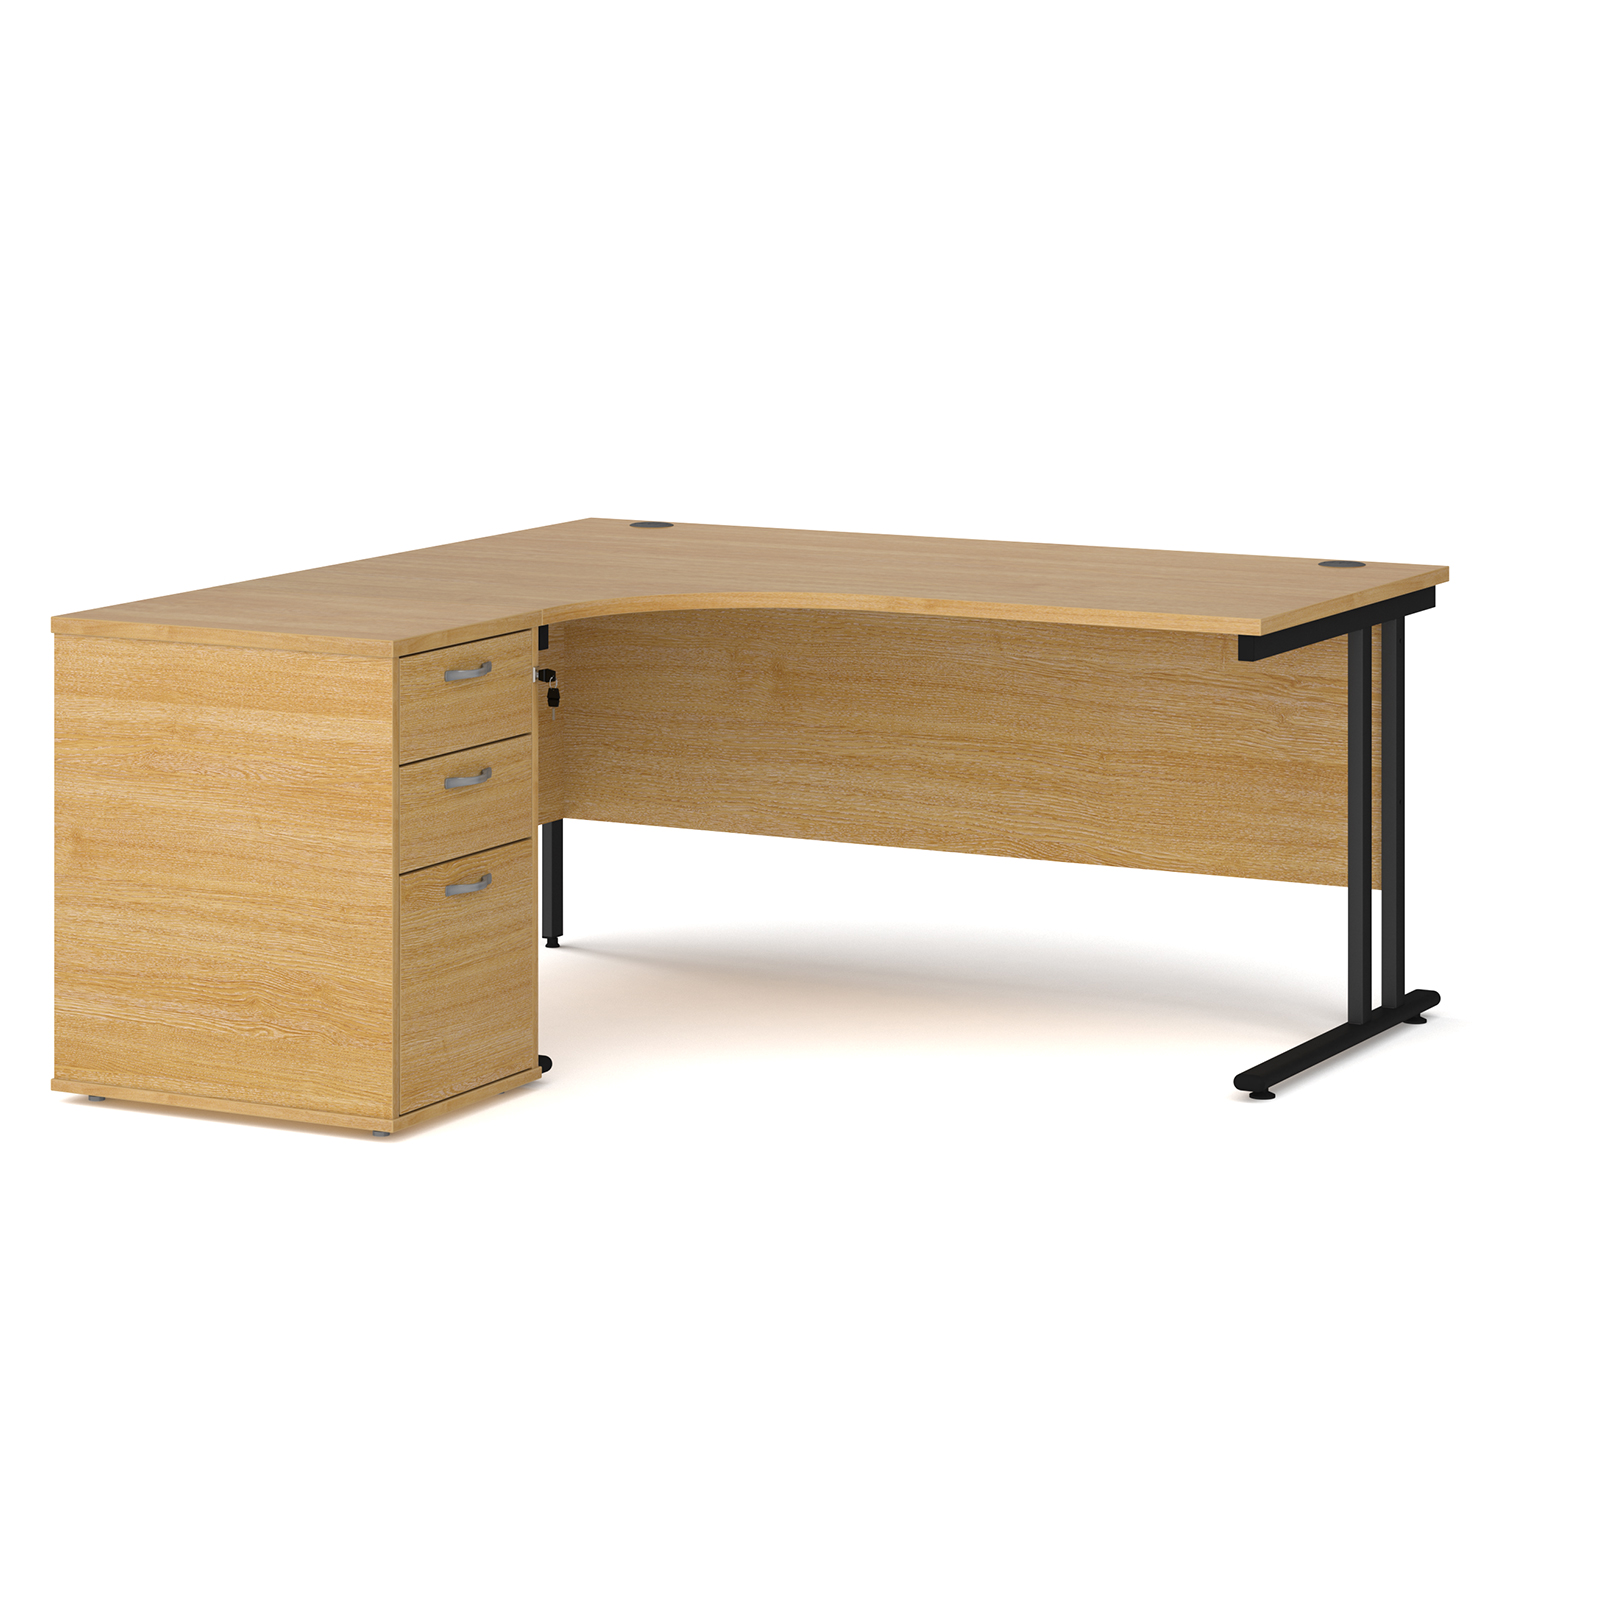 Left Handed Maestro 25 left hand ergonomic desk 1600mm with black cantilever frame and desk high pedestal - oak